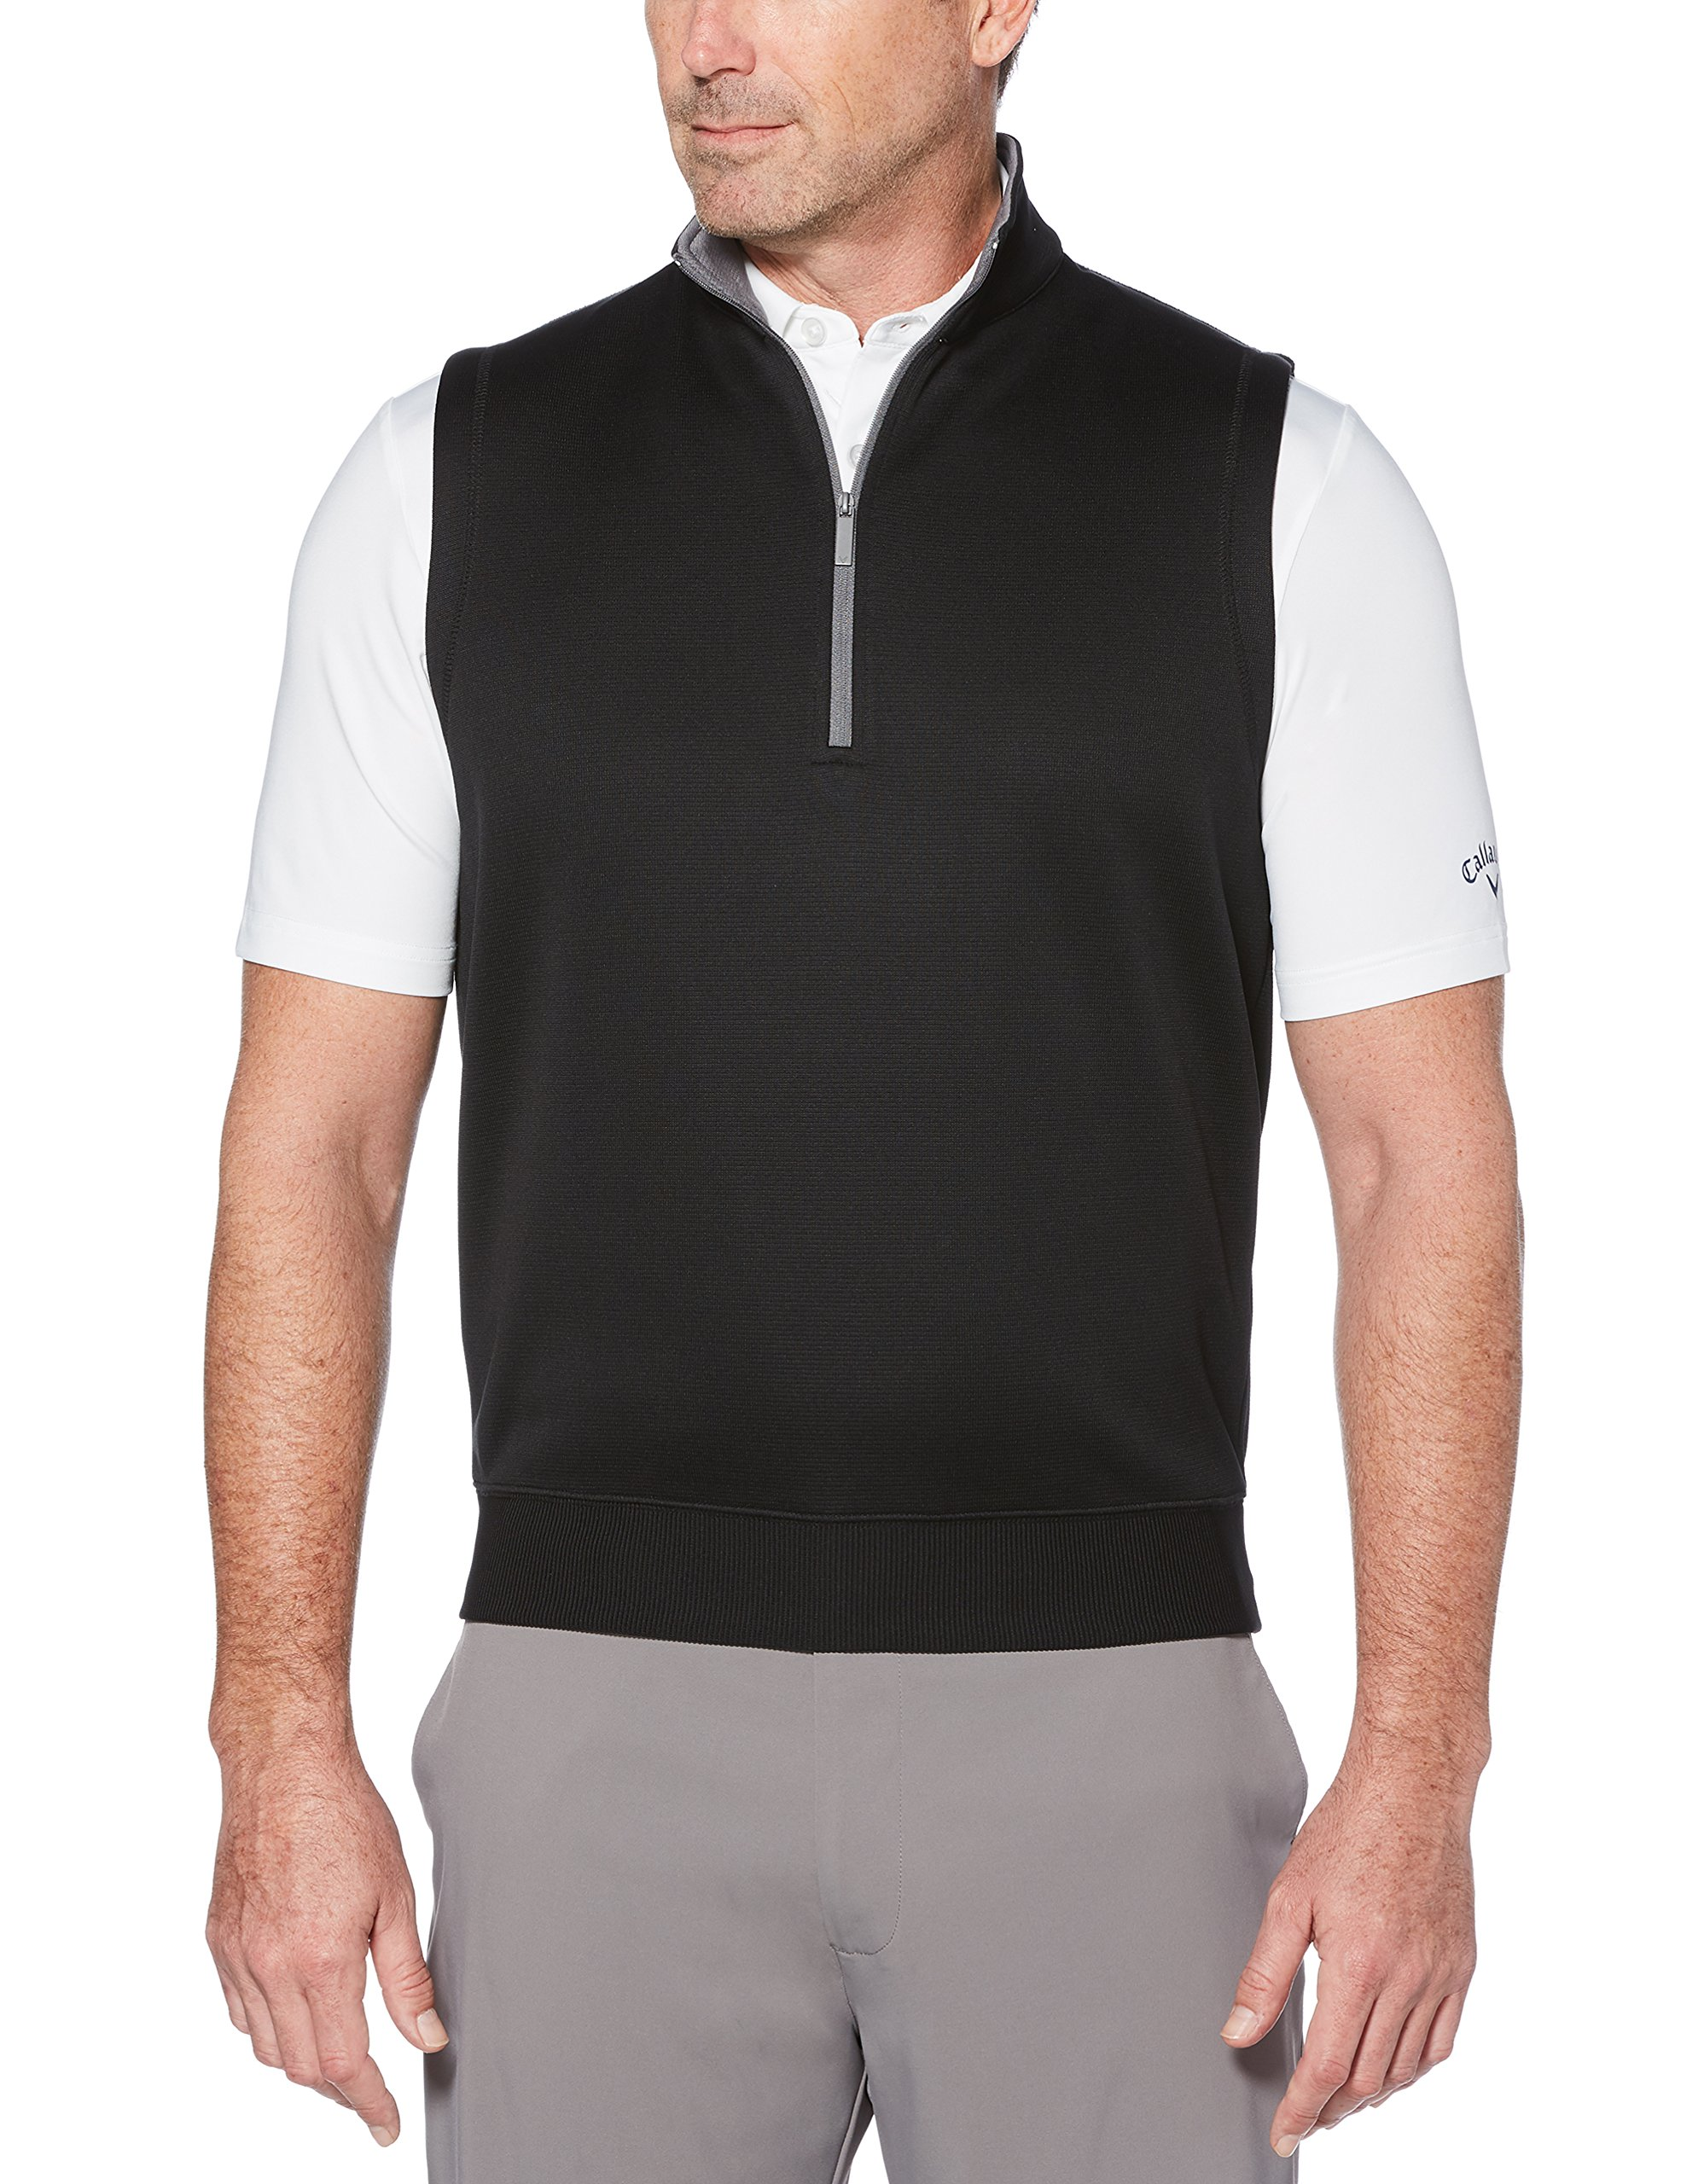 Callaway Men's Water Repellent 1/4 Zip Golf Vest, Caviar, Medium by Callaway